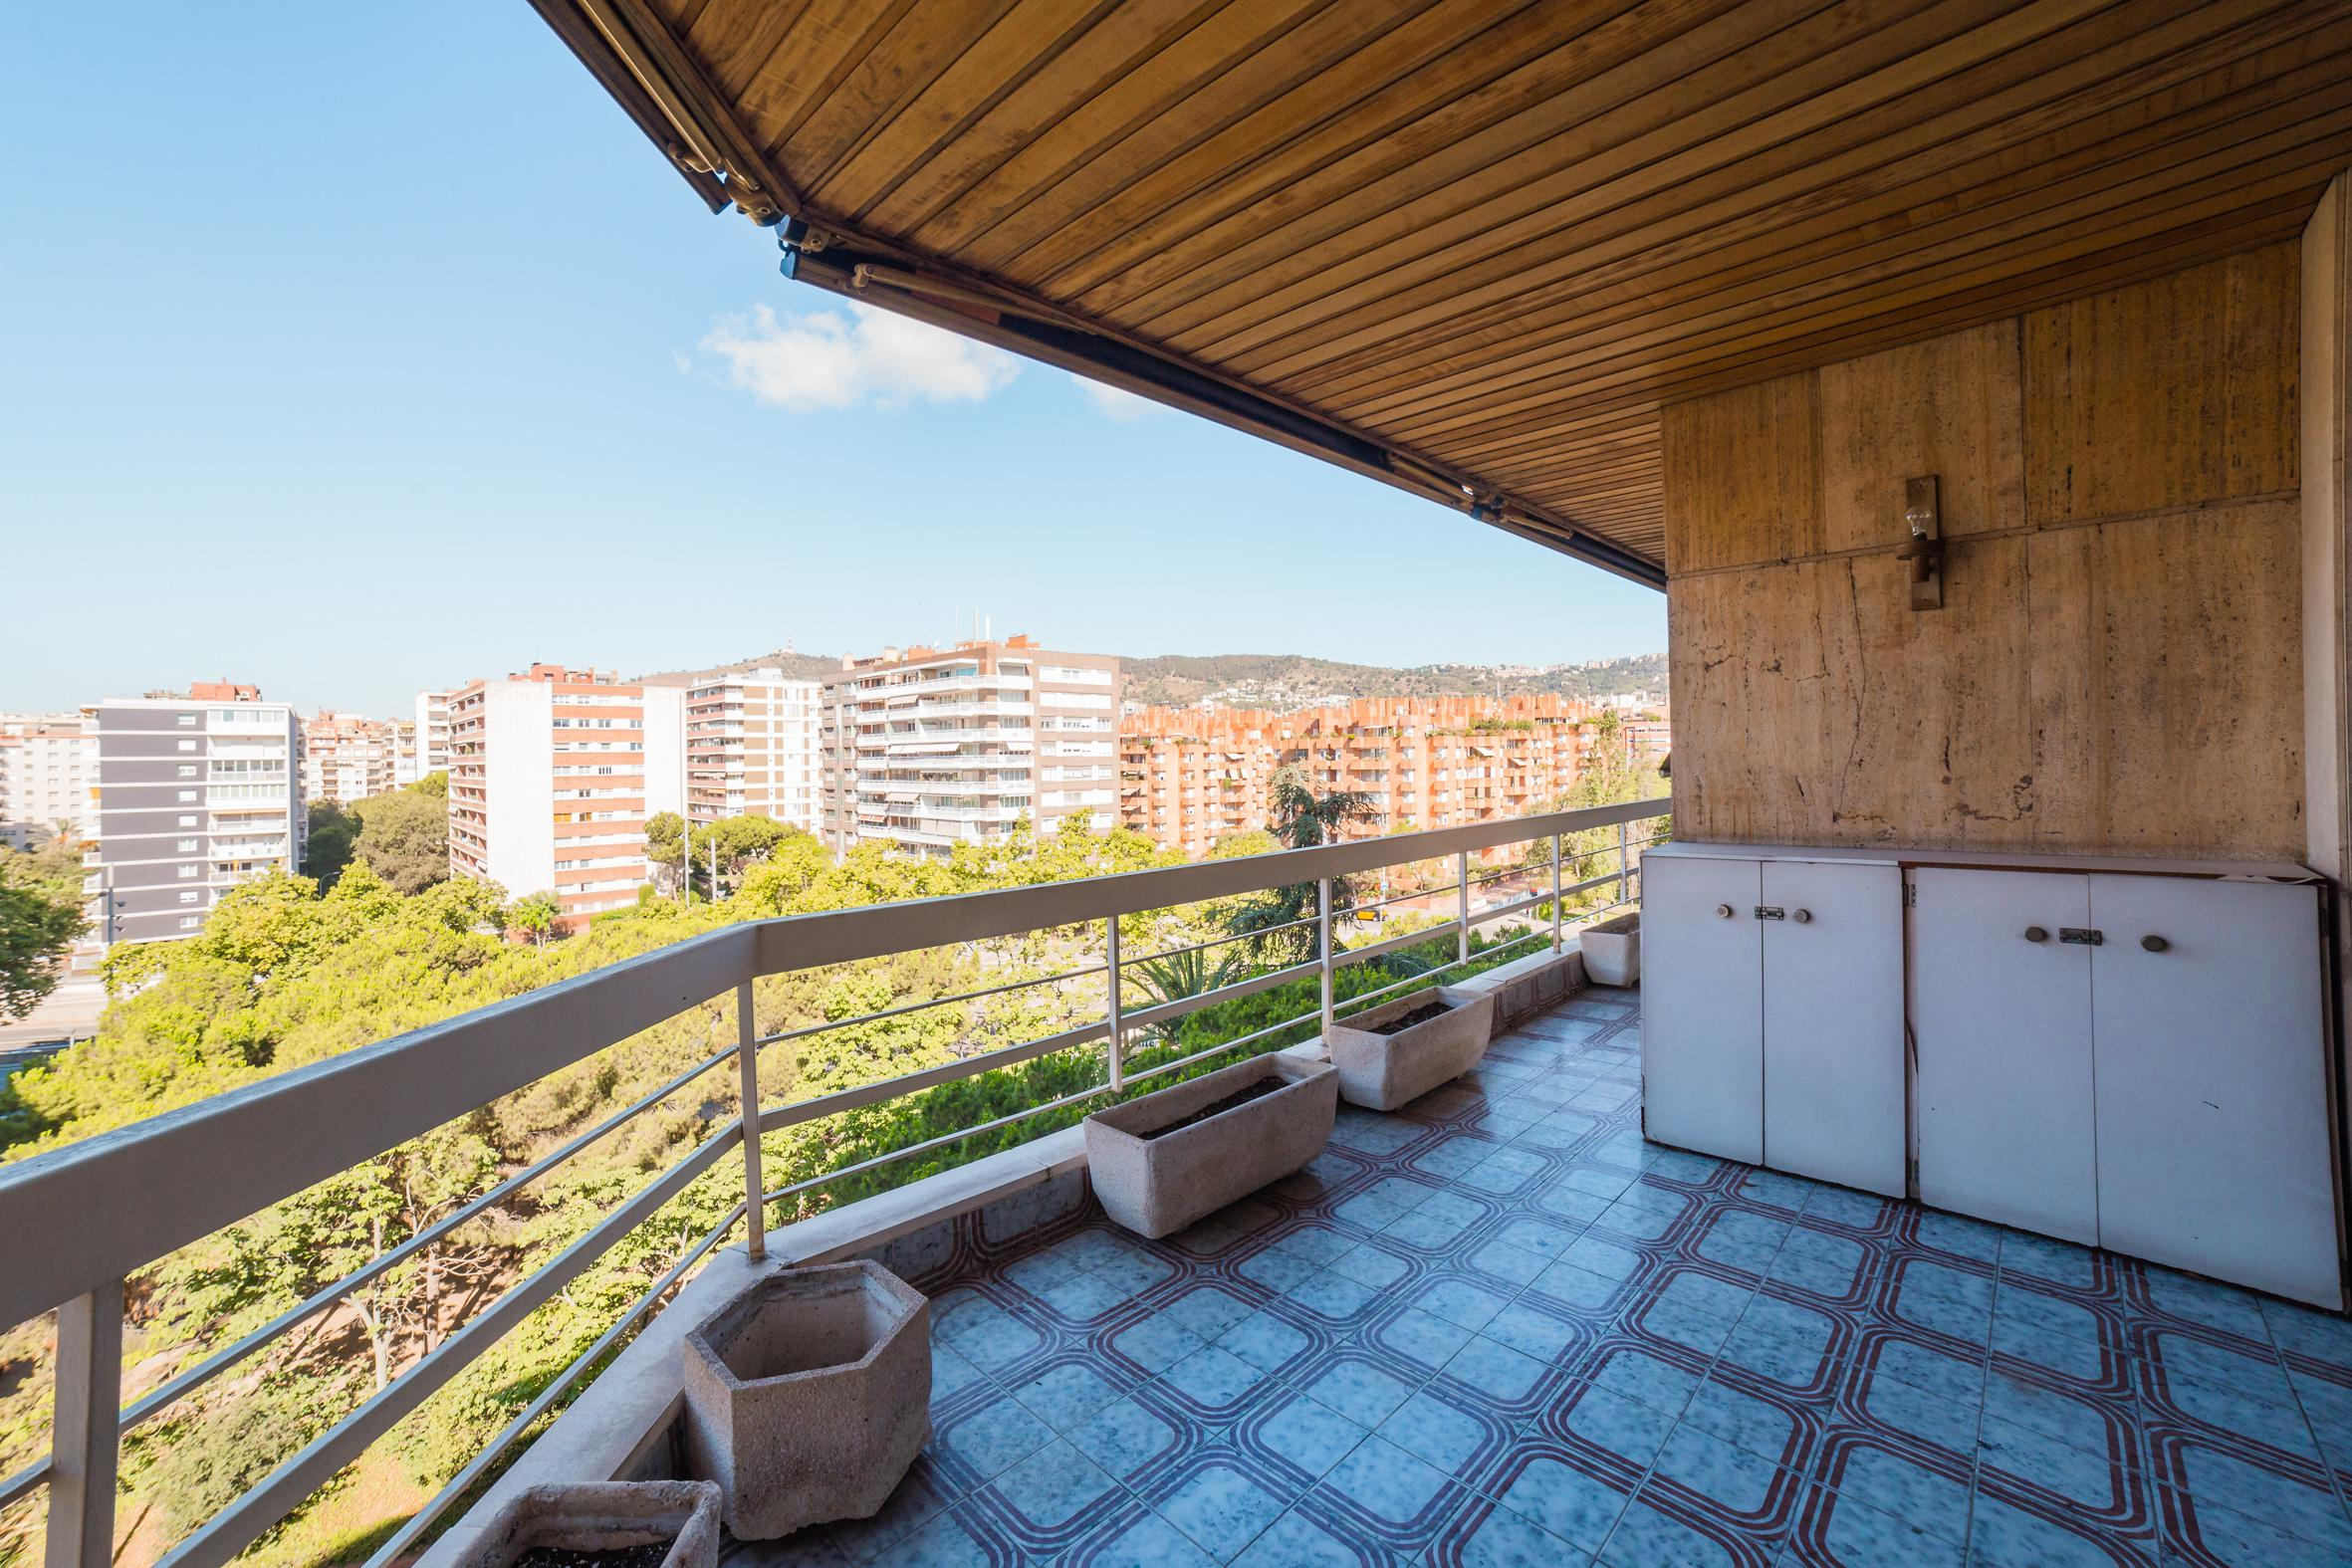 248988 Flat for sale in Les Corts, Les Corts 10